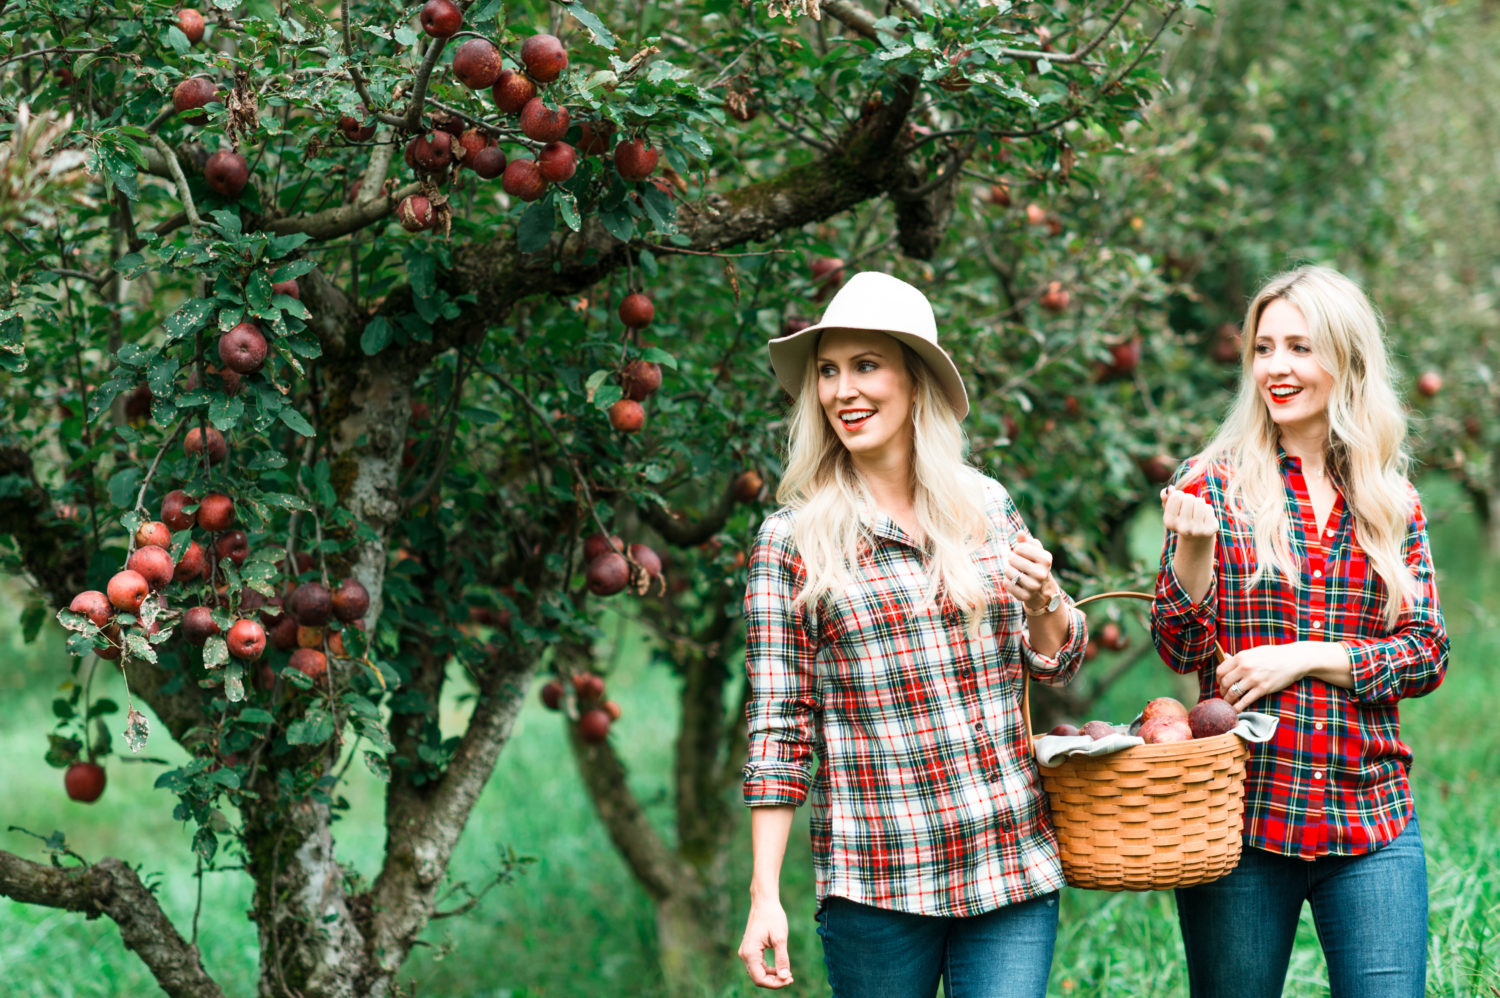 allison-cawley-city-peach-mireille-beckwith-apple-picking-1